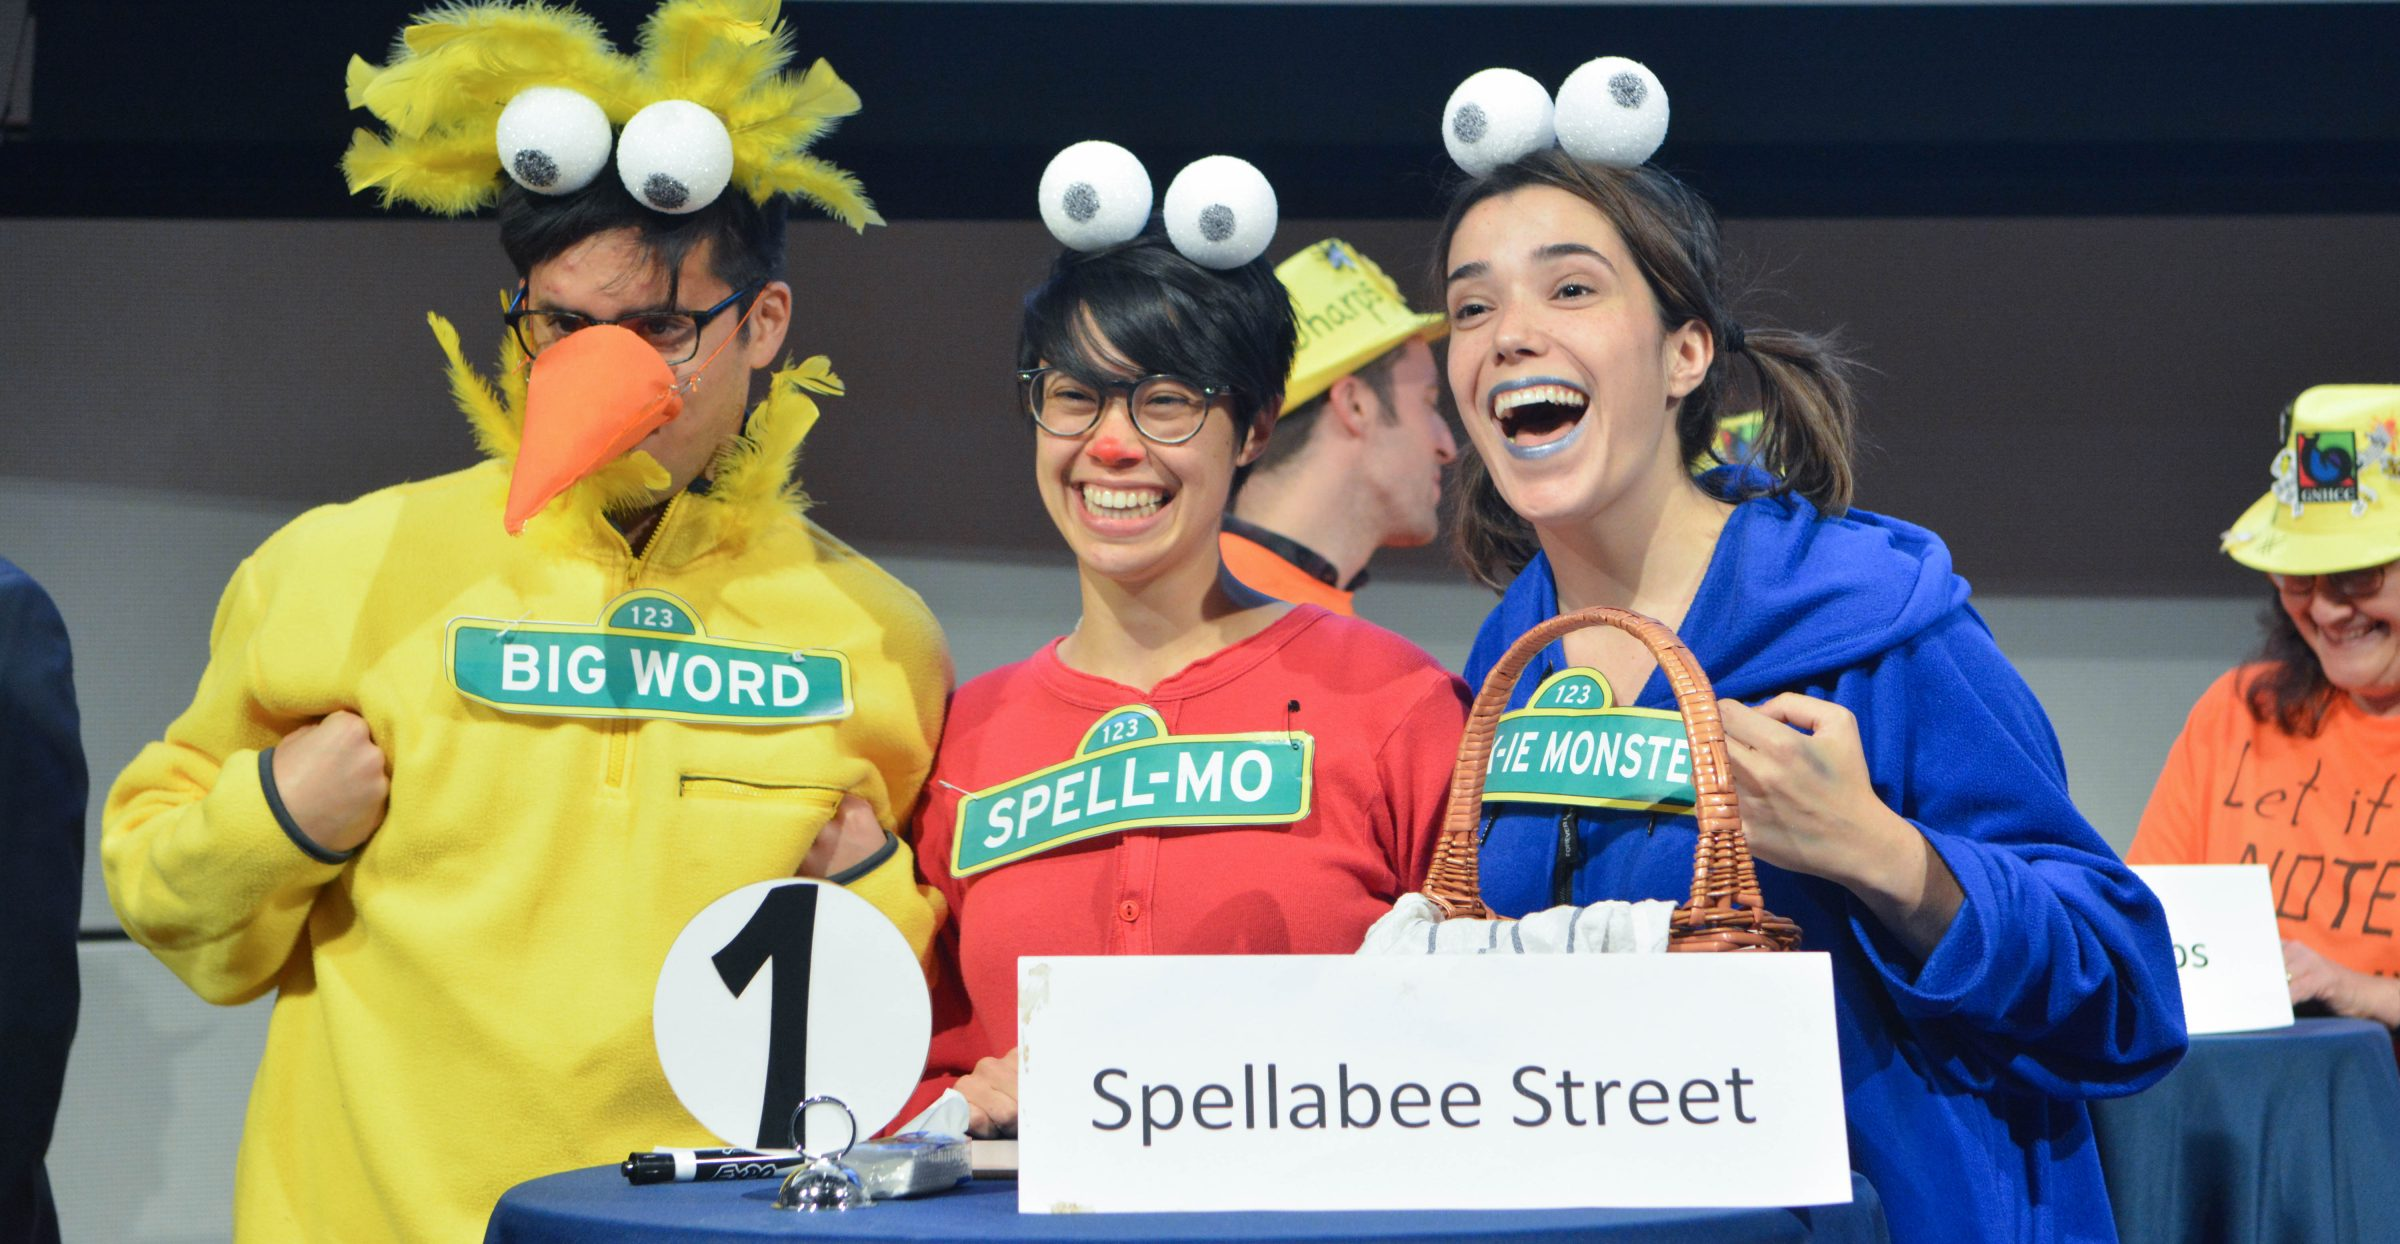 Team dressed as Sesame Street characters participate in the NHR Spelling Bee.